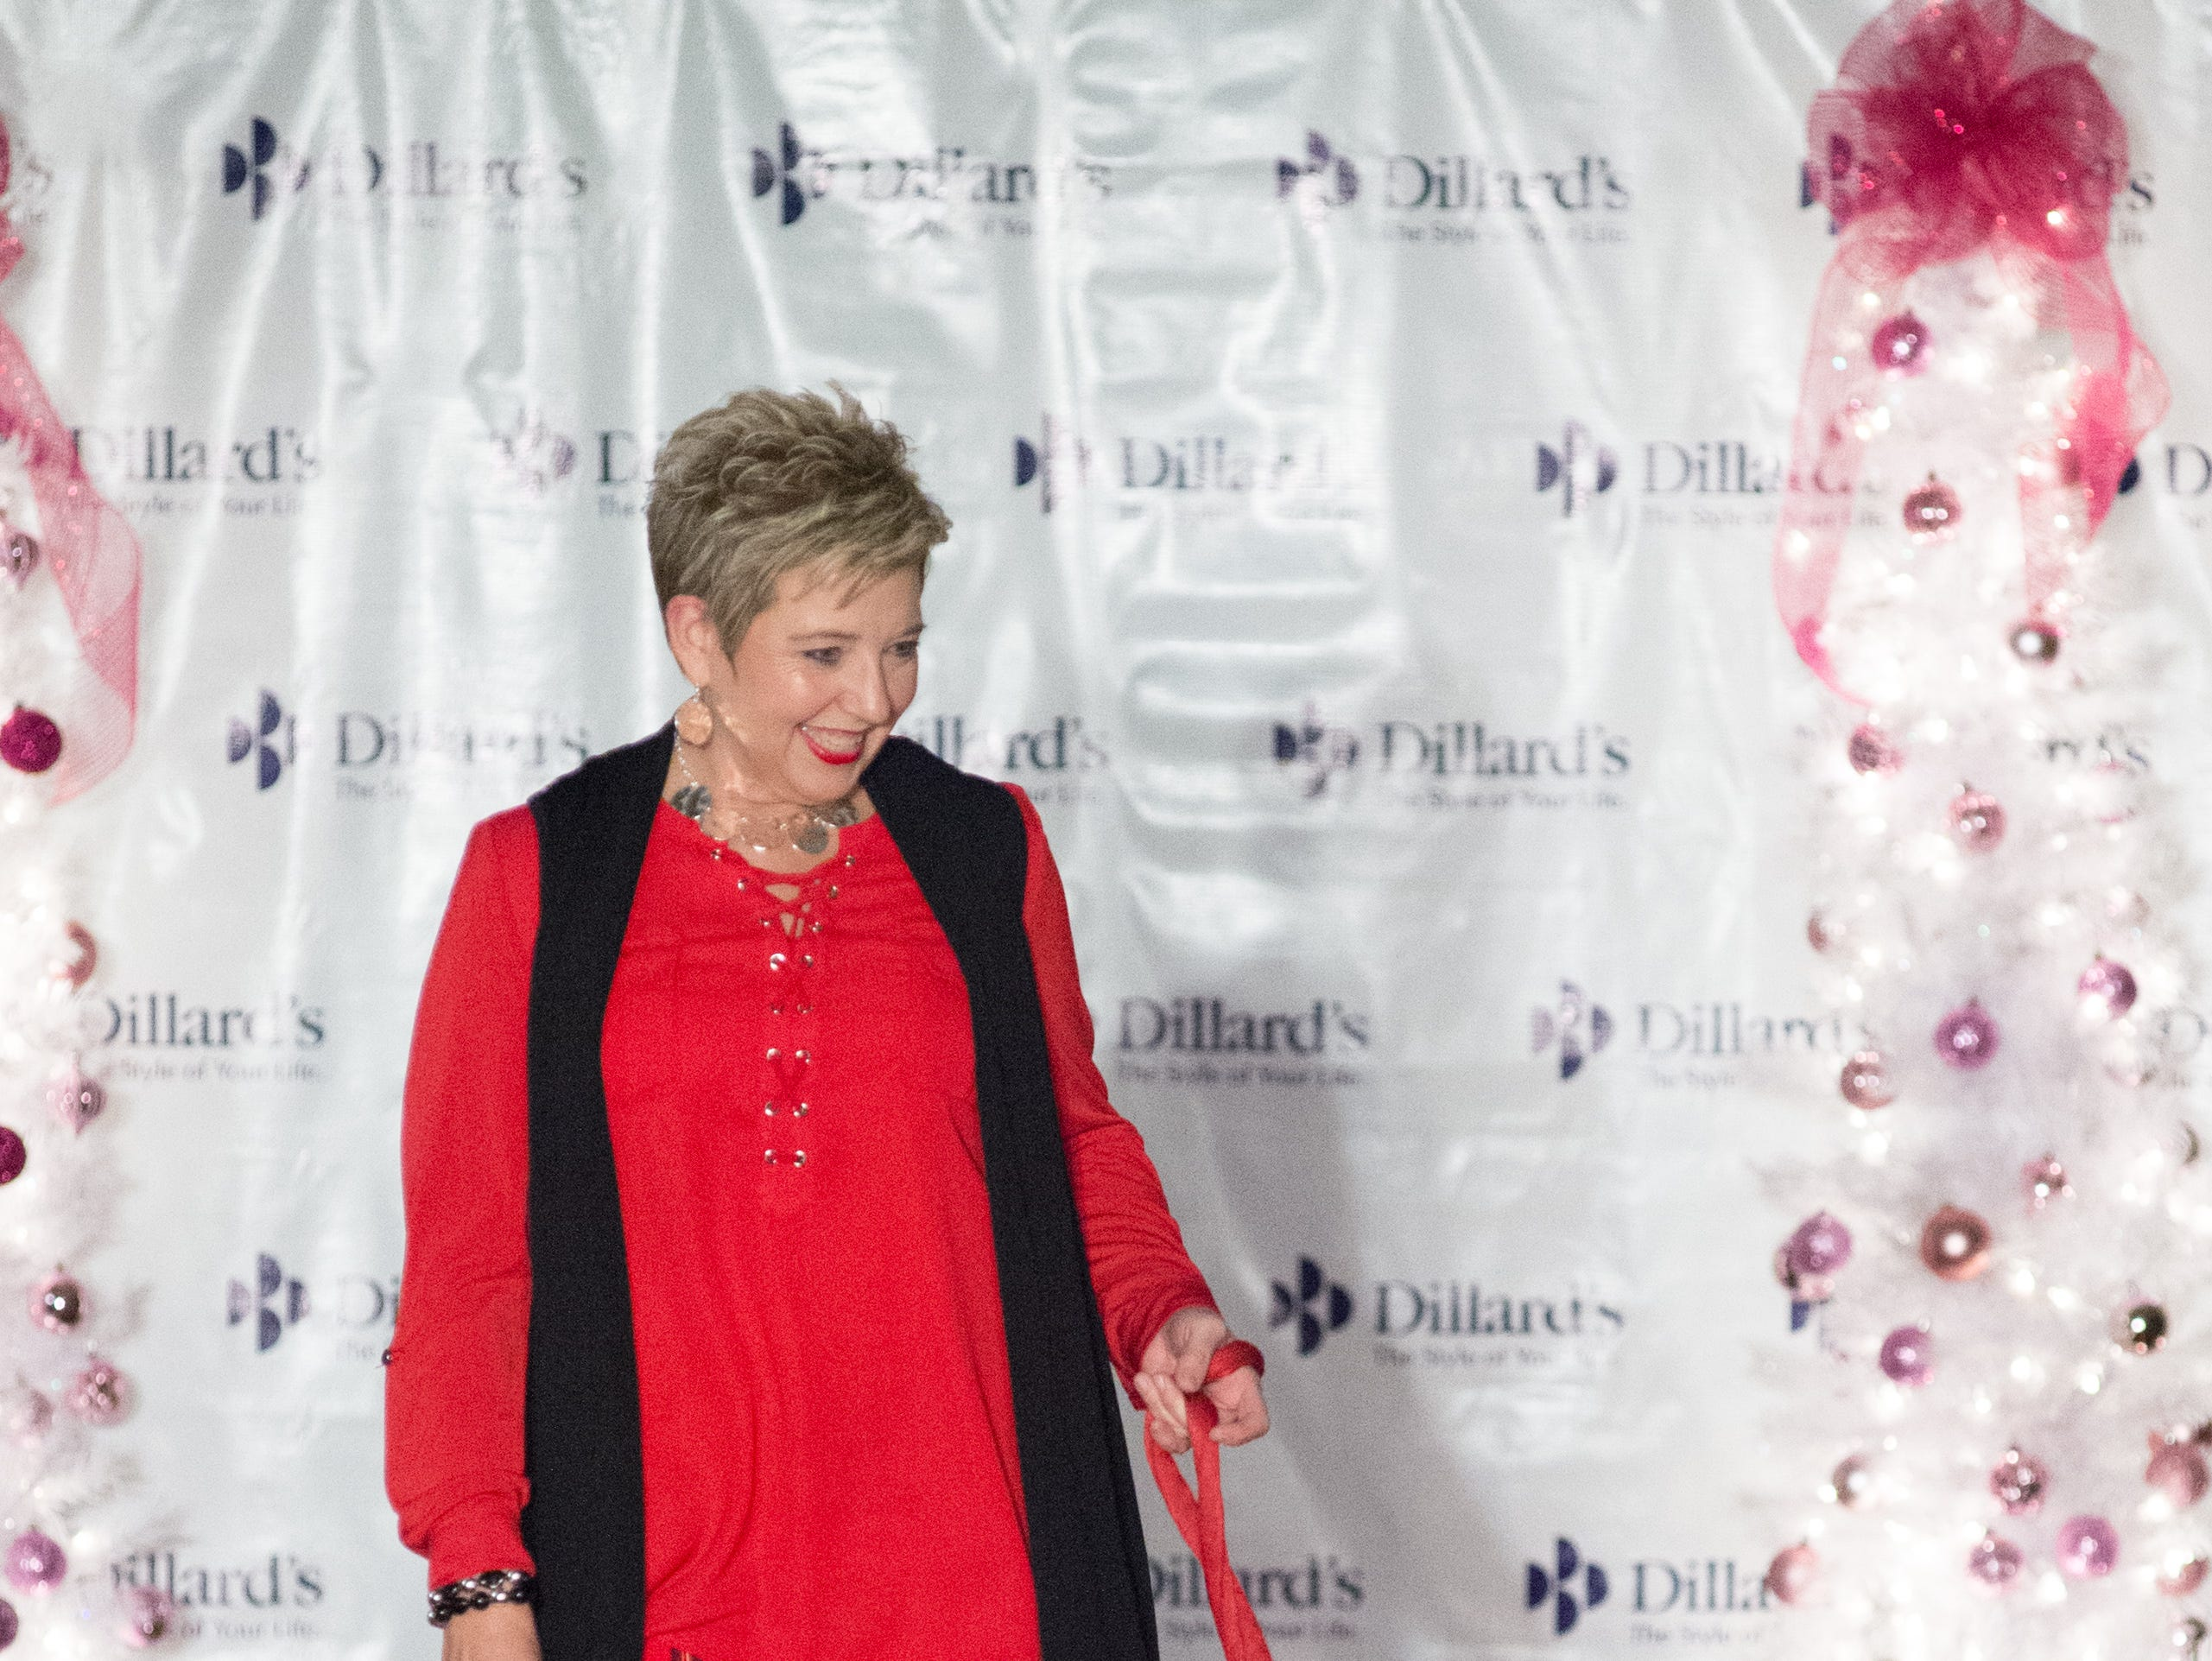 Participants have fun during the Garlands & Glitter Fashion Show by Dillard's presented by Hendersonville HolidayFest at Bluegrass Yacht and Country Club in Hendersonville on Saturday, Nov. 3. The event was to benefit the YMCA After Breast Cancer Program.